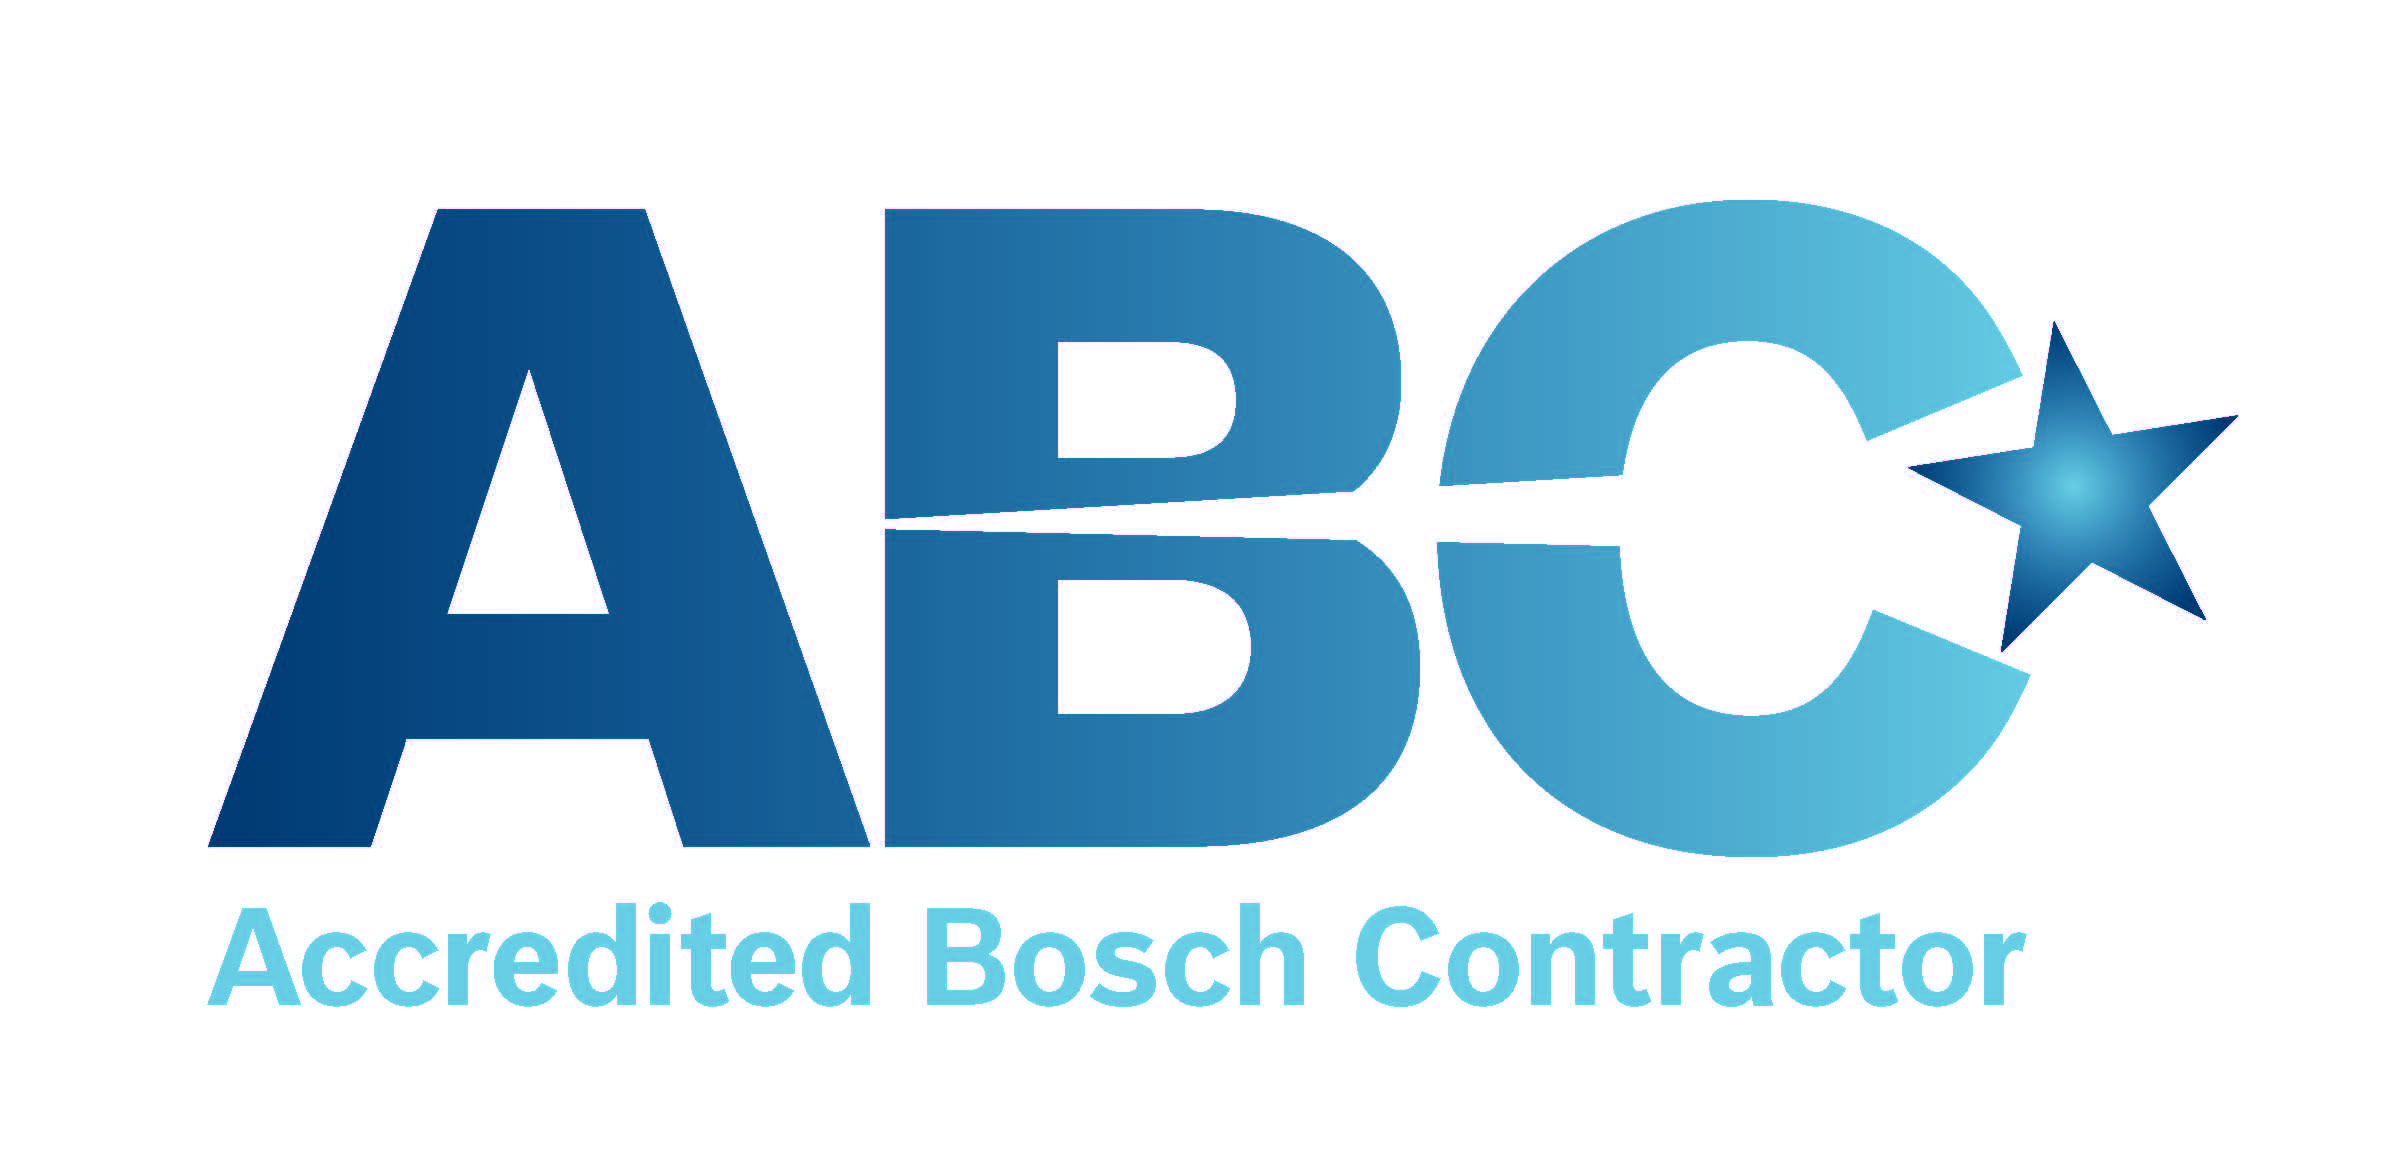 Accredited Bosch Contractor